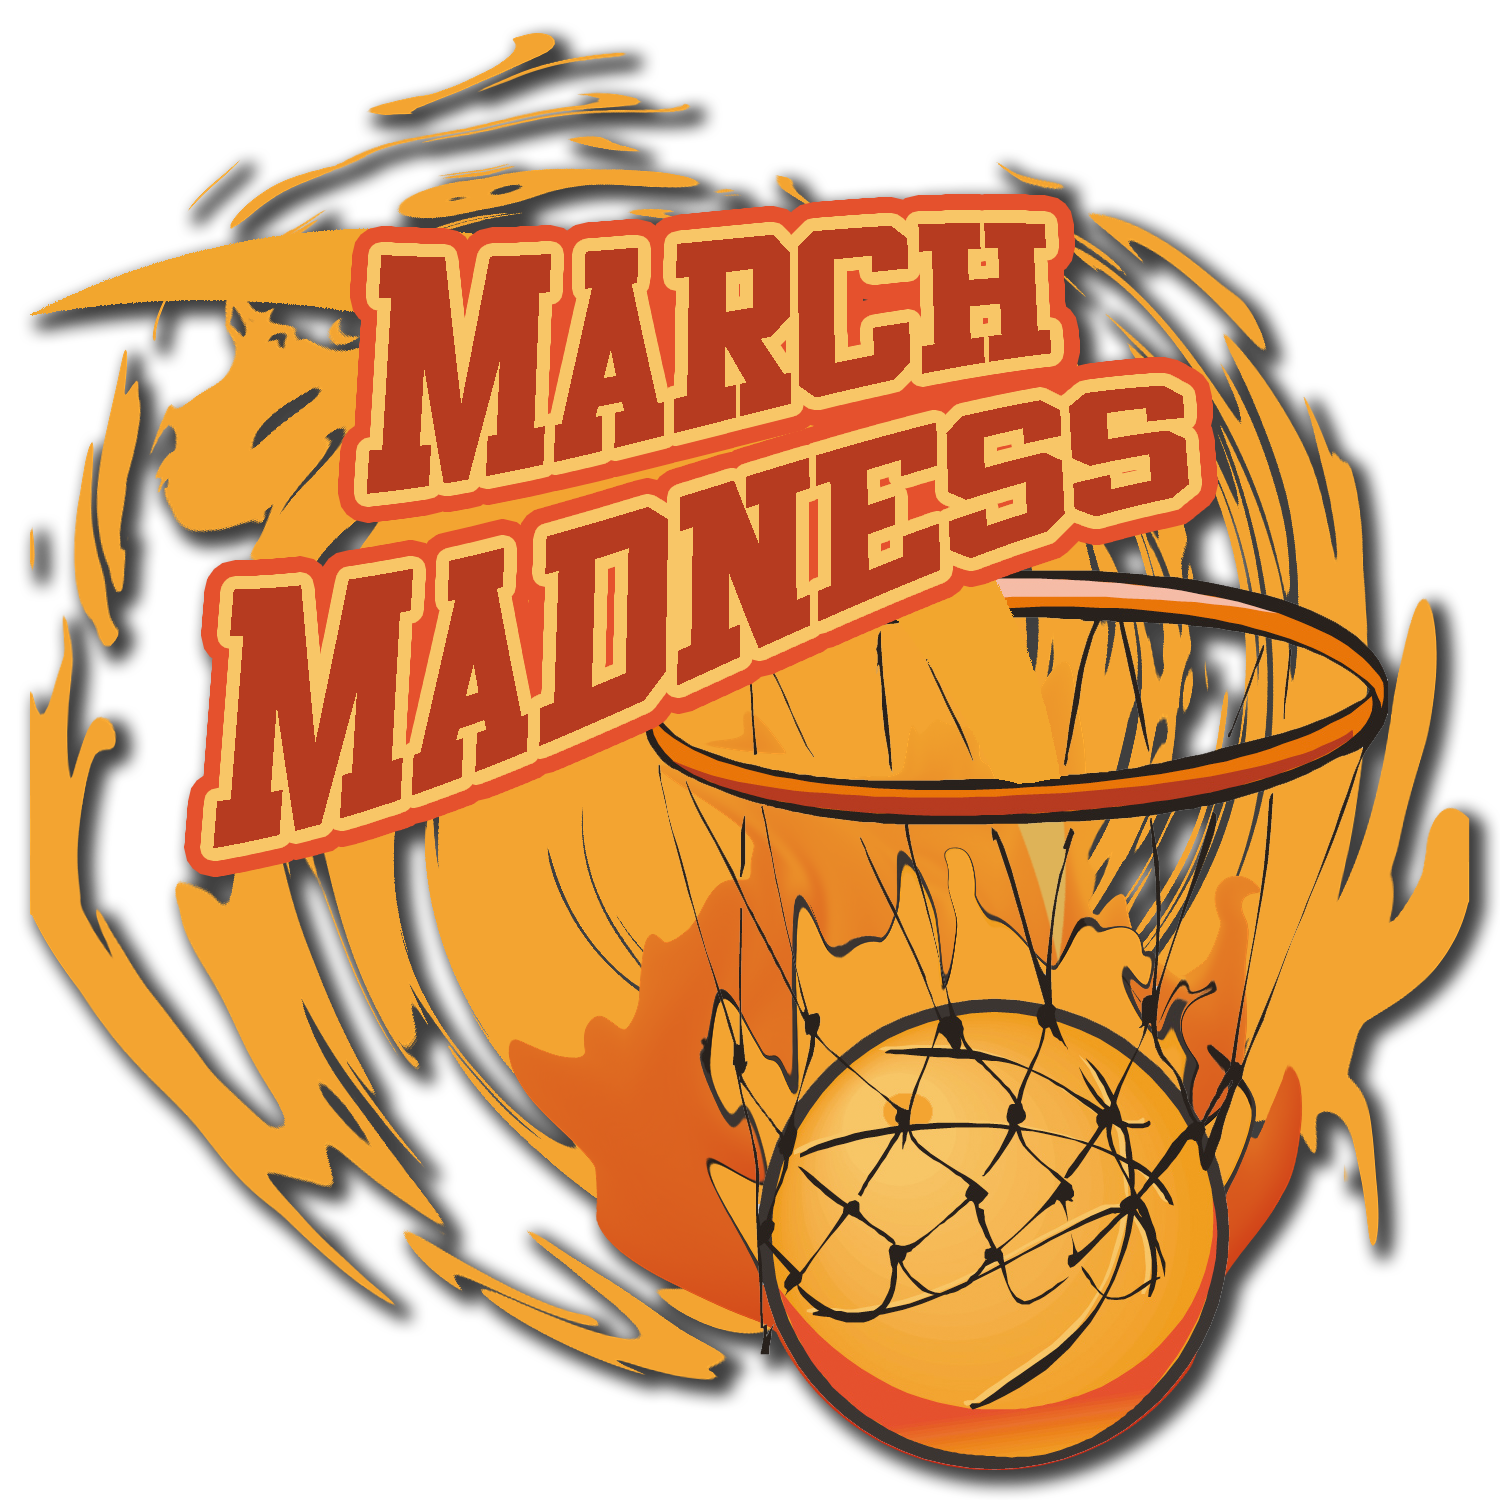 Basketball game clipart clipart freeuse March Madness Basketball Clipart clipart freeuse